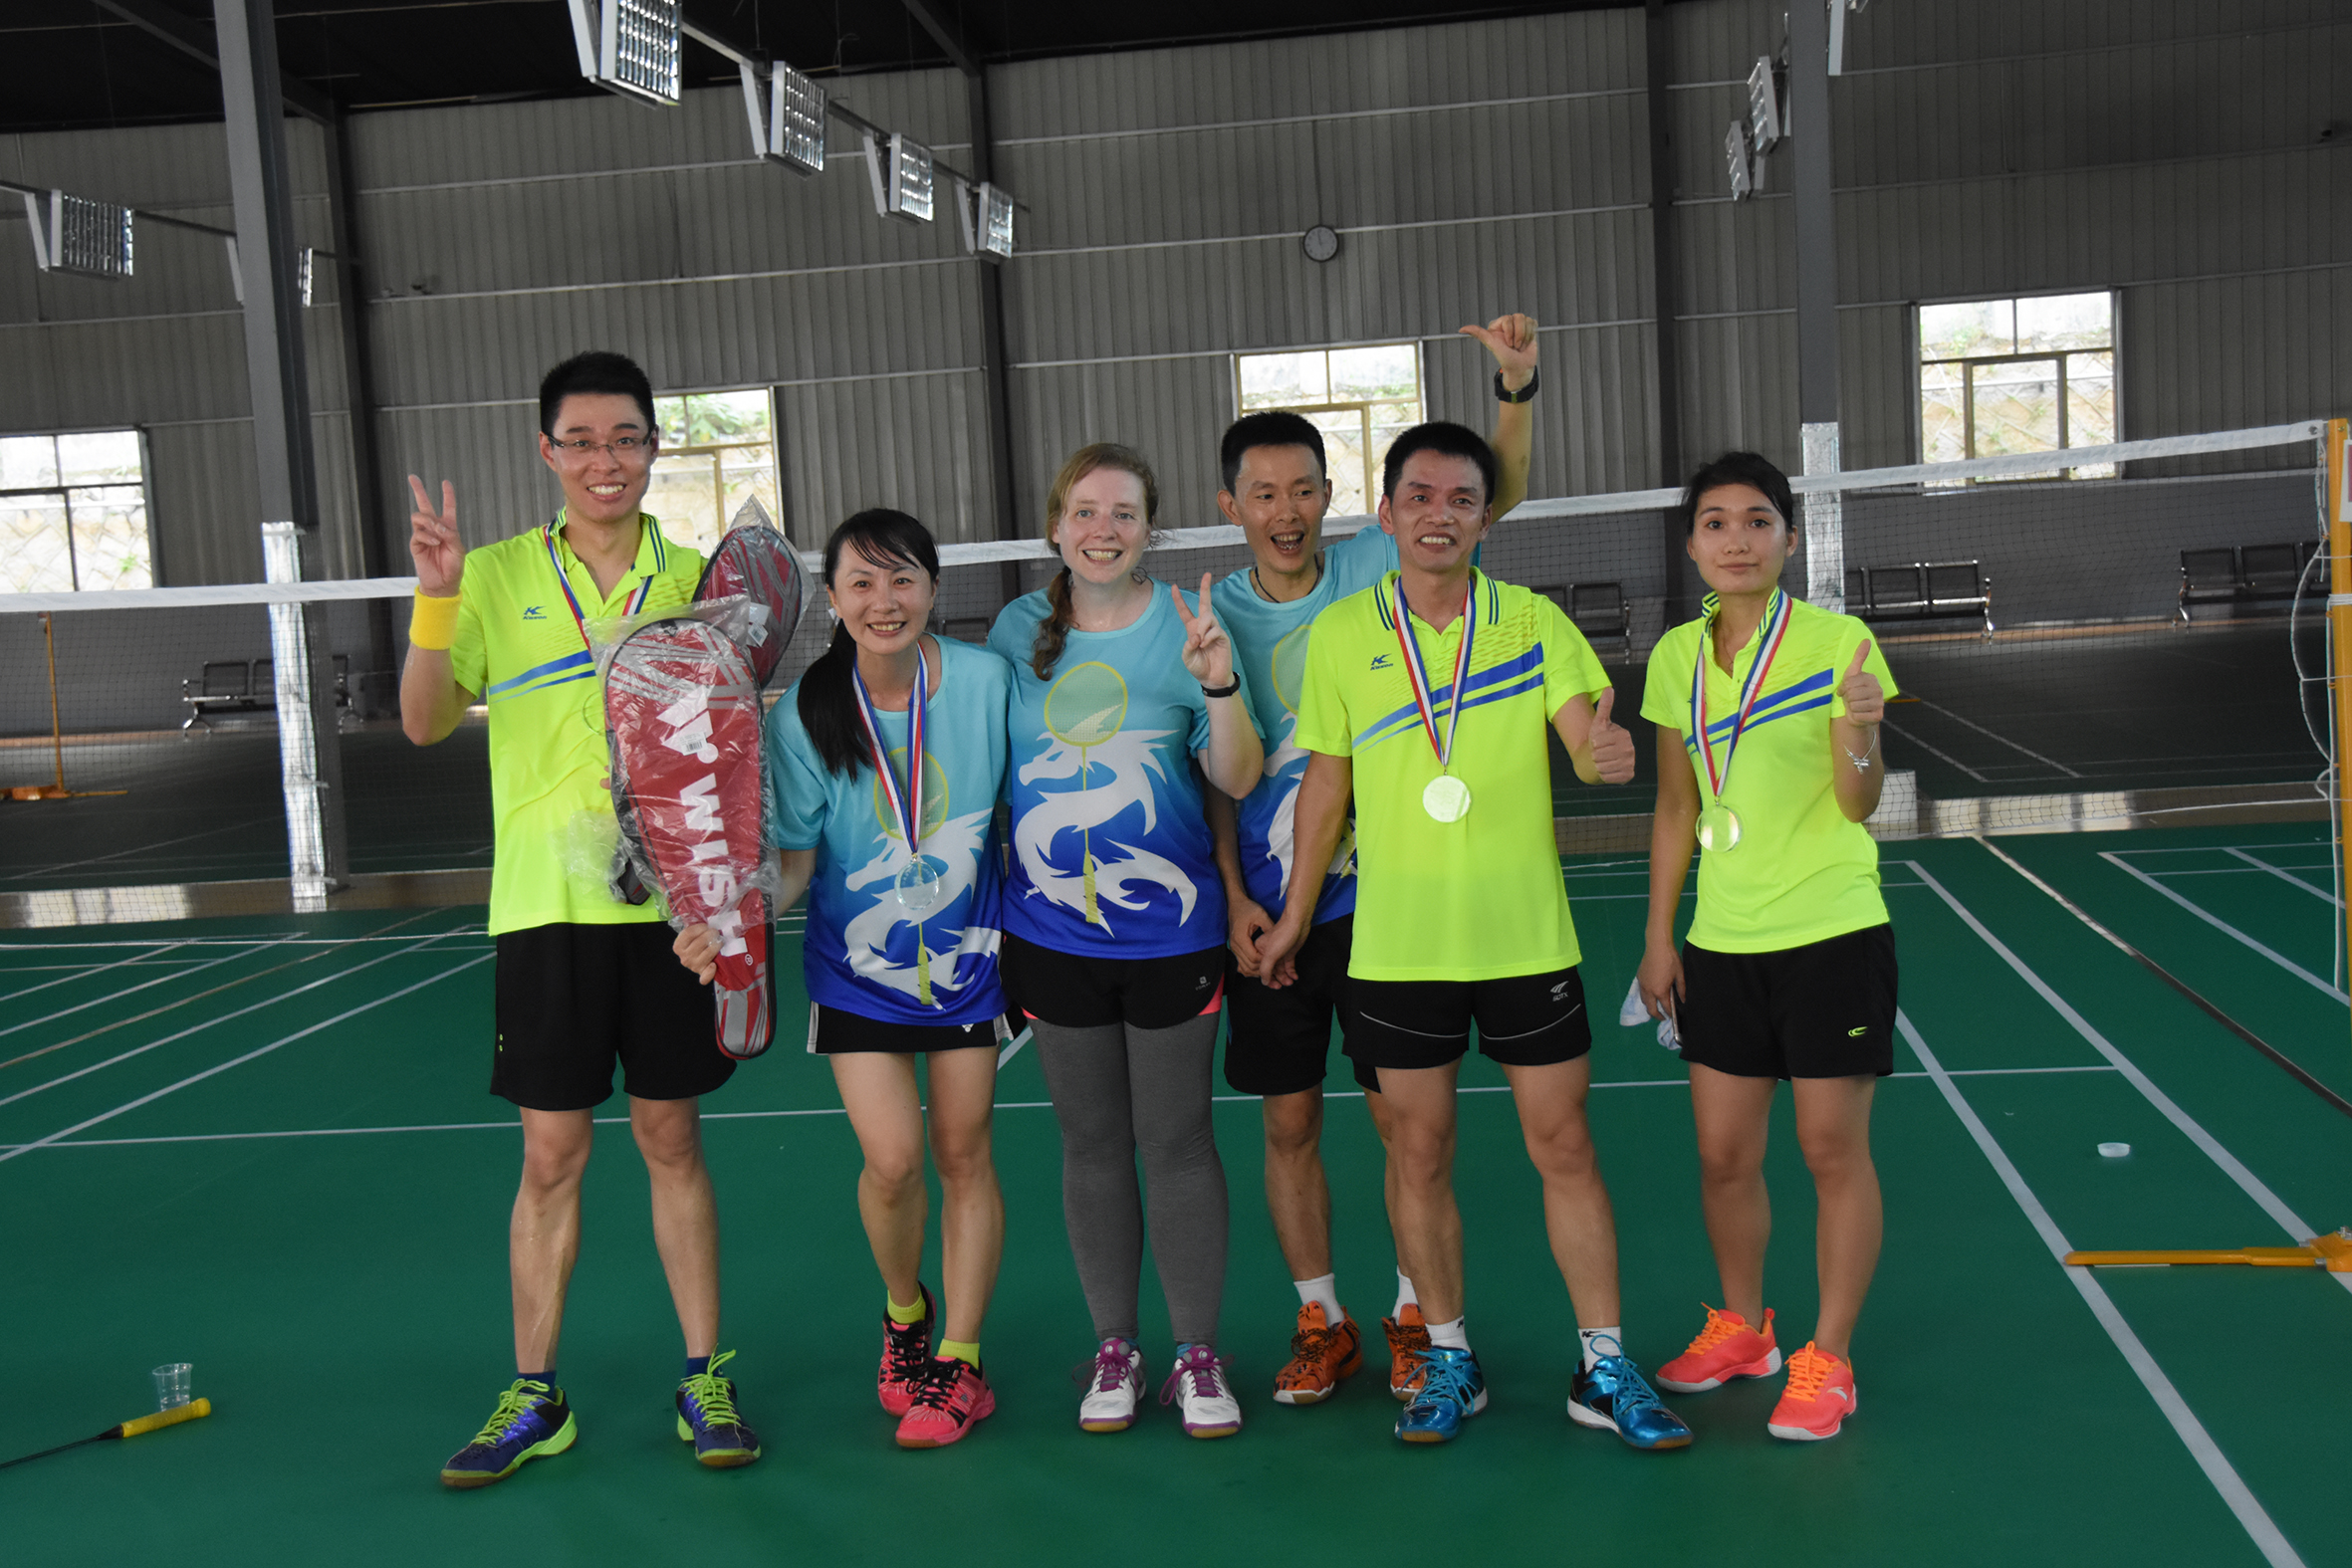 The winners of the mixed doubles was two teams I didn't know before. But notice the one woman is the same as the runner up in the womens doubles. She was the only one to get medals in two events. She was awesome and I'd like to play with her more.